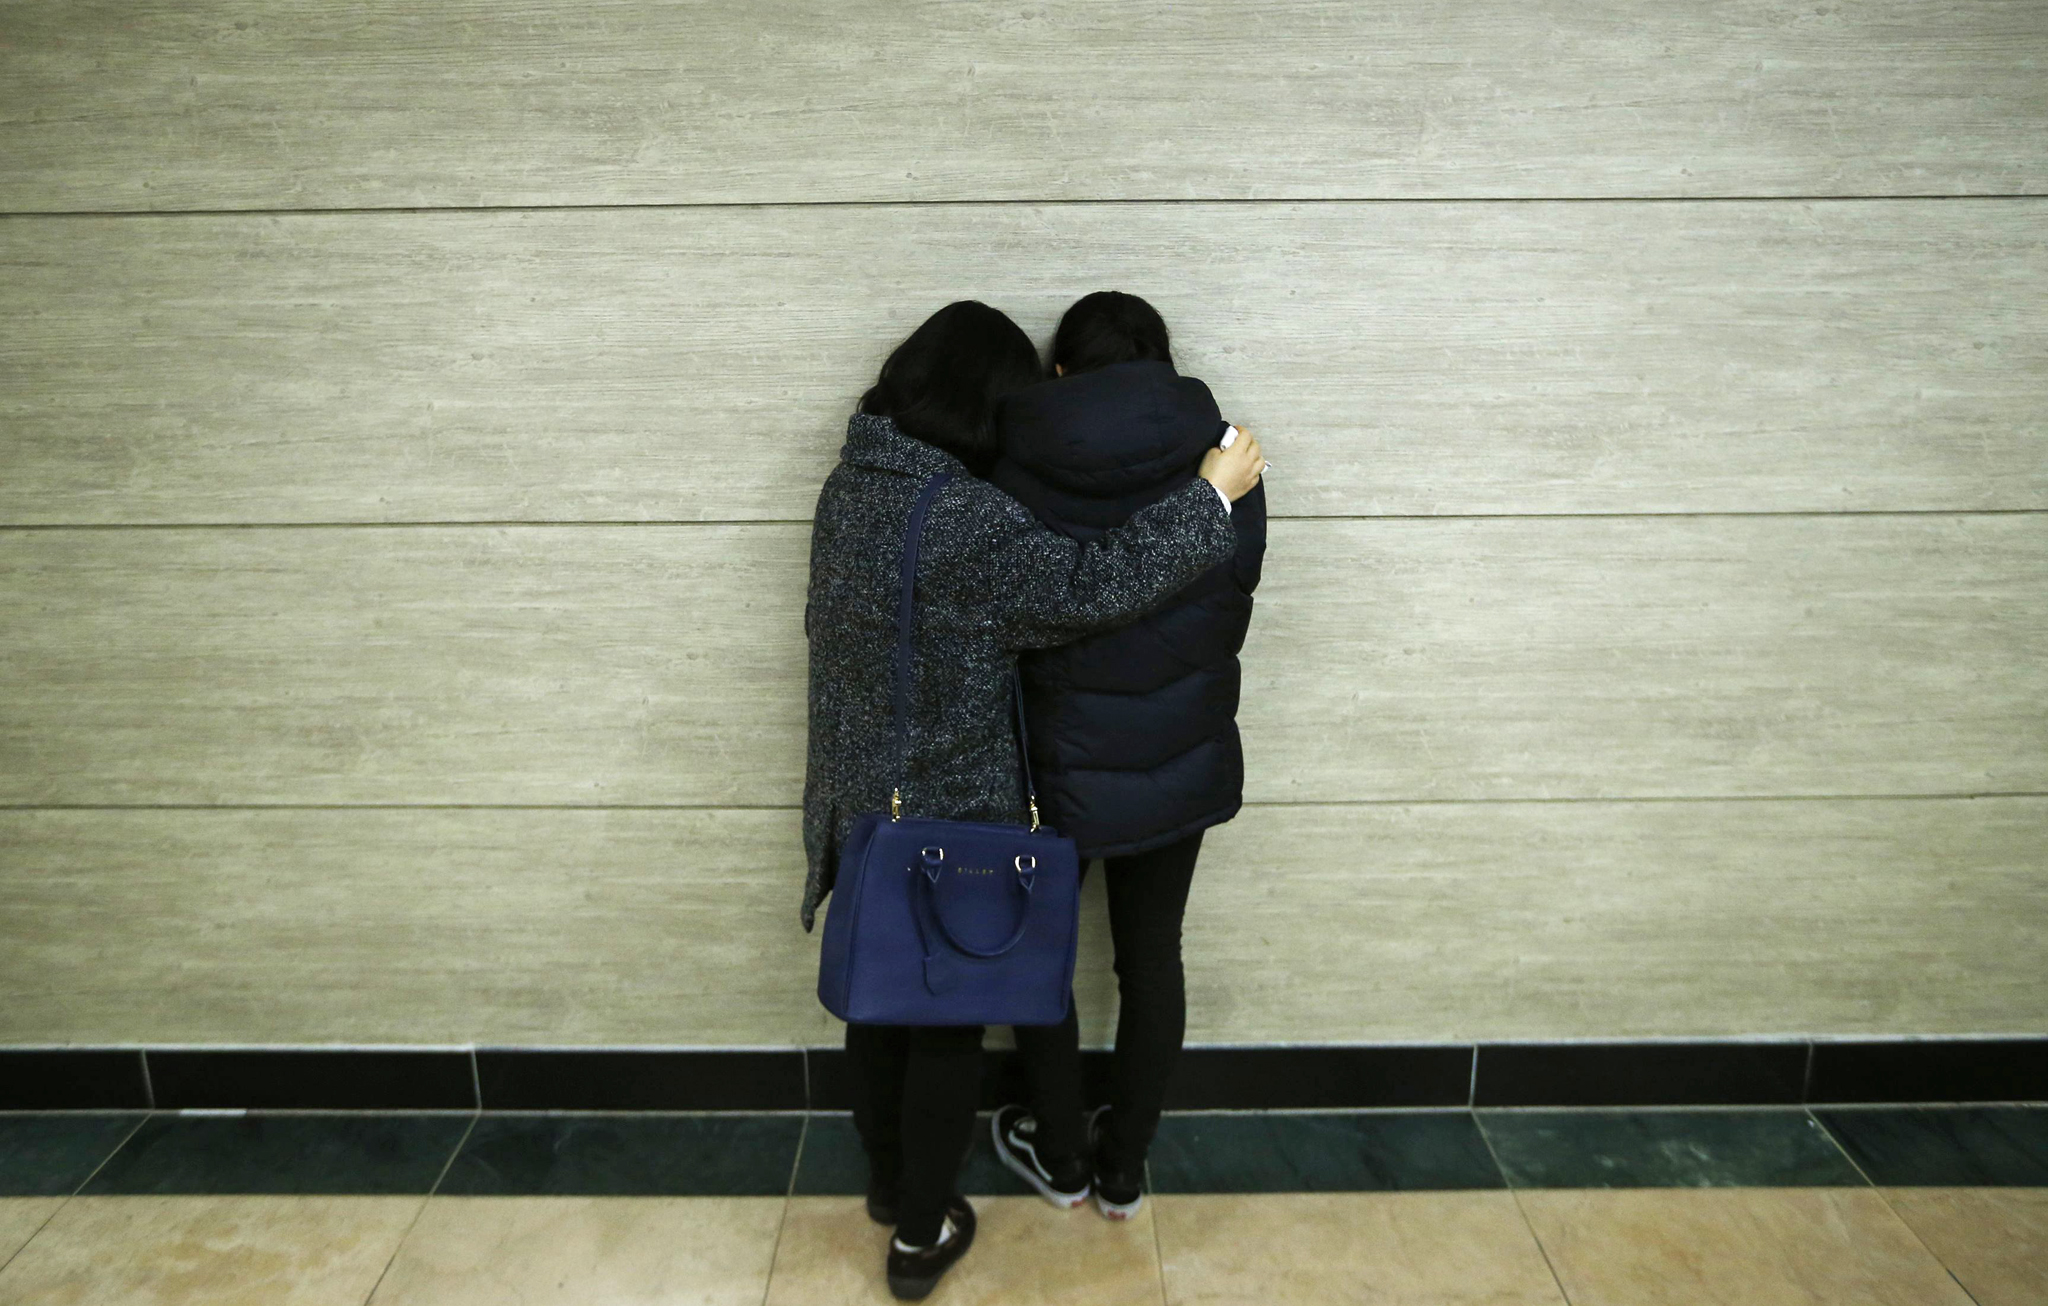 Relatives of victims who were killed when a resort building collapsed, comfort each other at a group memorial altar in Gyeongju...Relatives of victims who were killed when a resort building collapsed, comfort each other at a group memorial altar in Gyeongju, about 375 km (235 miles) southeast of Seou February 18, 2014.  Ten people attending a welcoming party for new university students were killed when a building at a South Korean mountain resort collapsed late on Monday, emergency officials said, trapping dozens in snow and rubble for several hours. About 560 students had gathered in the auditorium of the golf resort in the mountains in the city of Gyeongju, around 375 km (235 miles) southeast of Seoul. Heavy snow had built up on the roof of the prefabricated building, causing it to collapse, fire department officials said.   REUTERS/Kim Hong-Ji